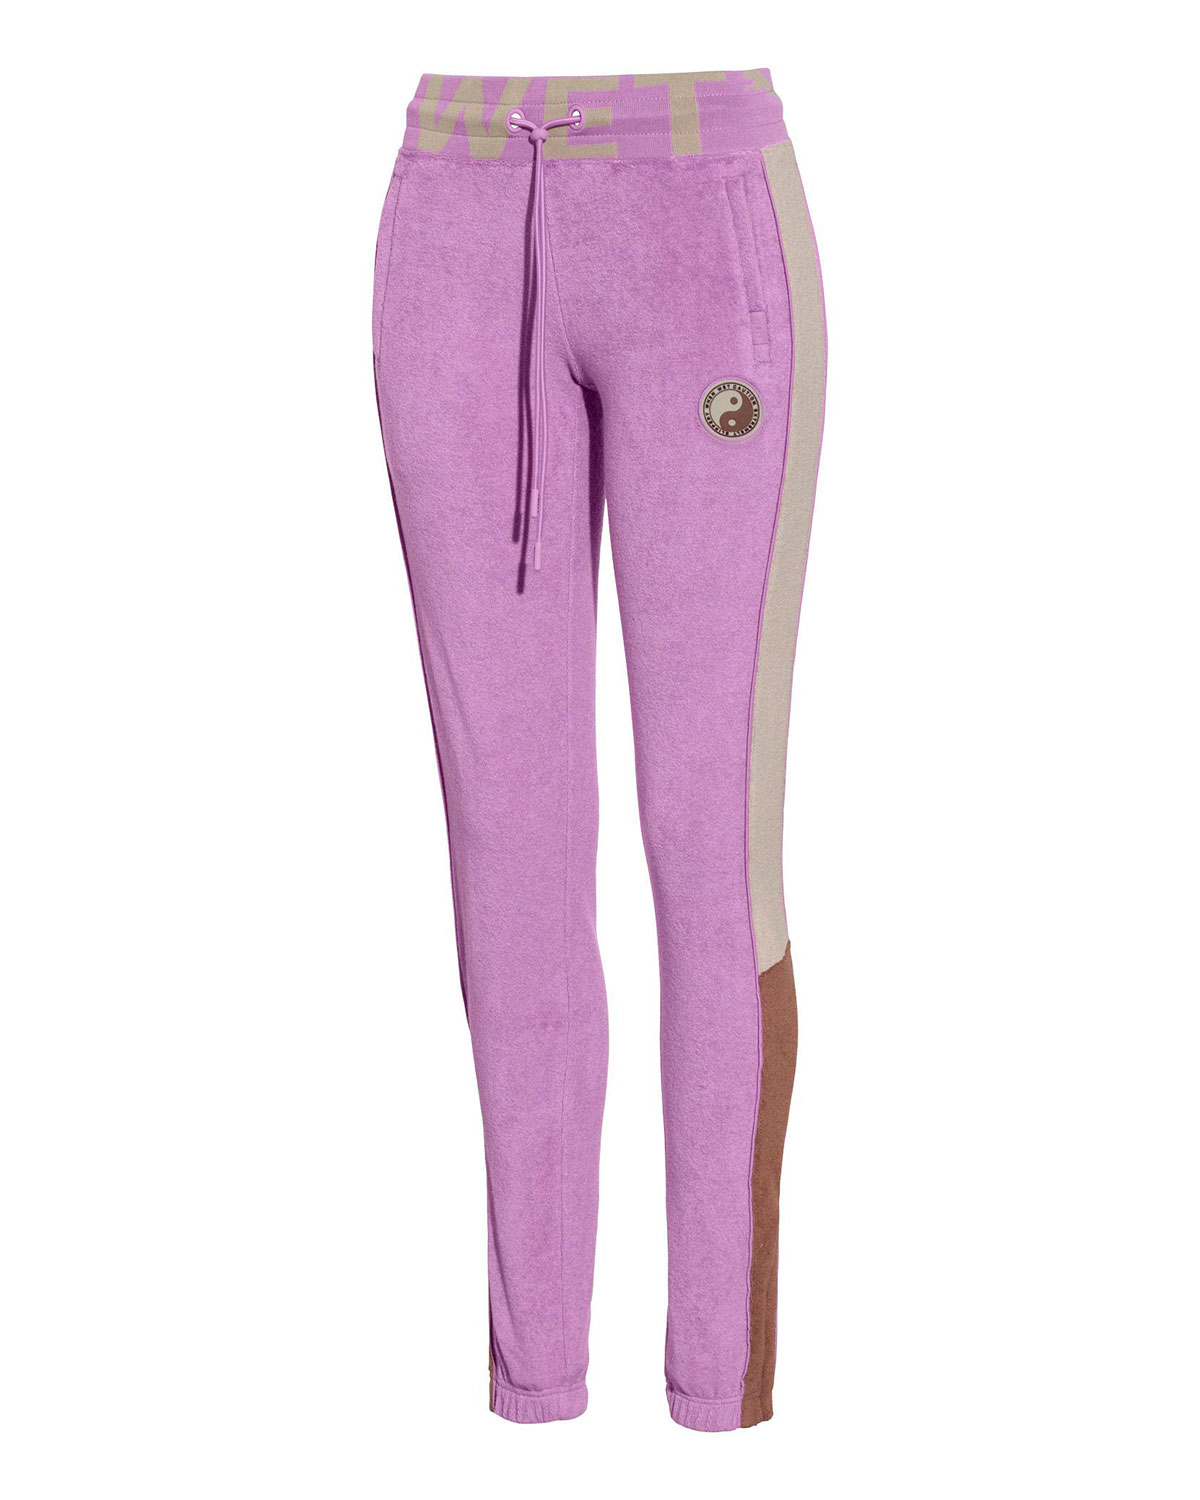 Fitted Drawstring-Waist Track Pants